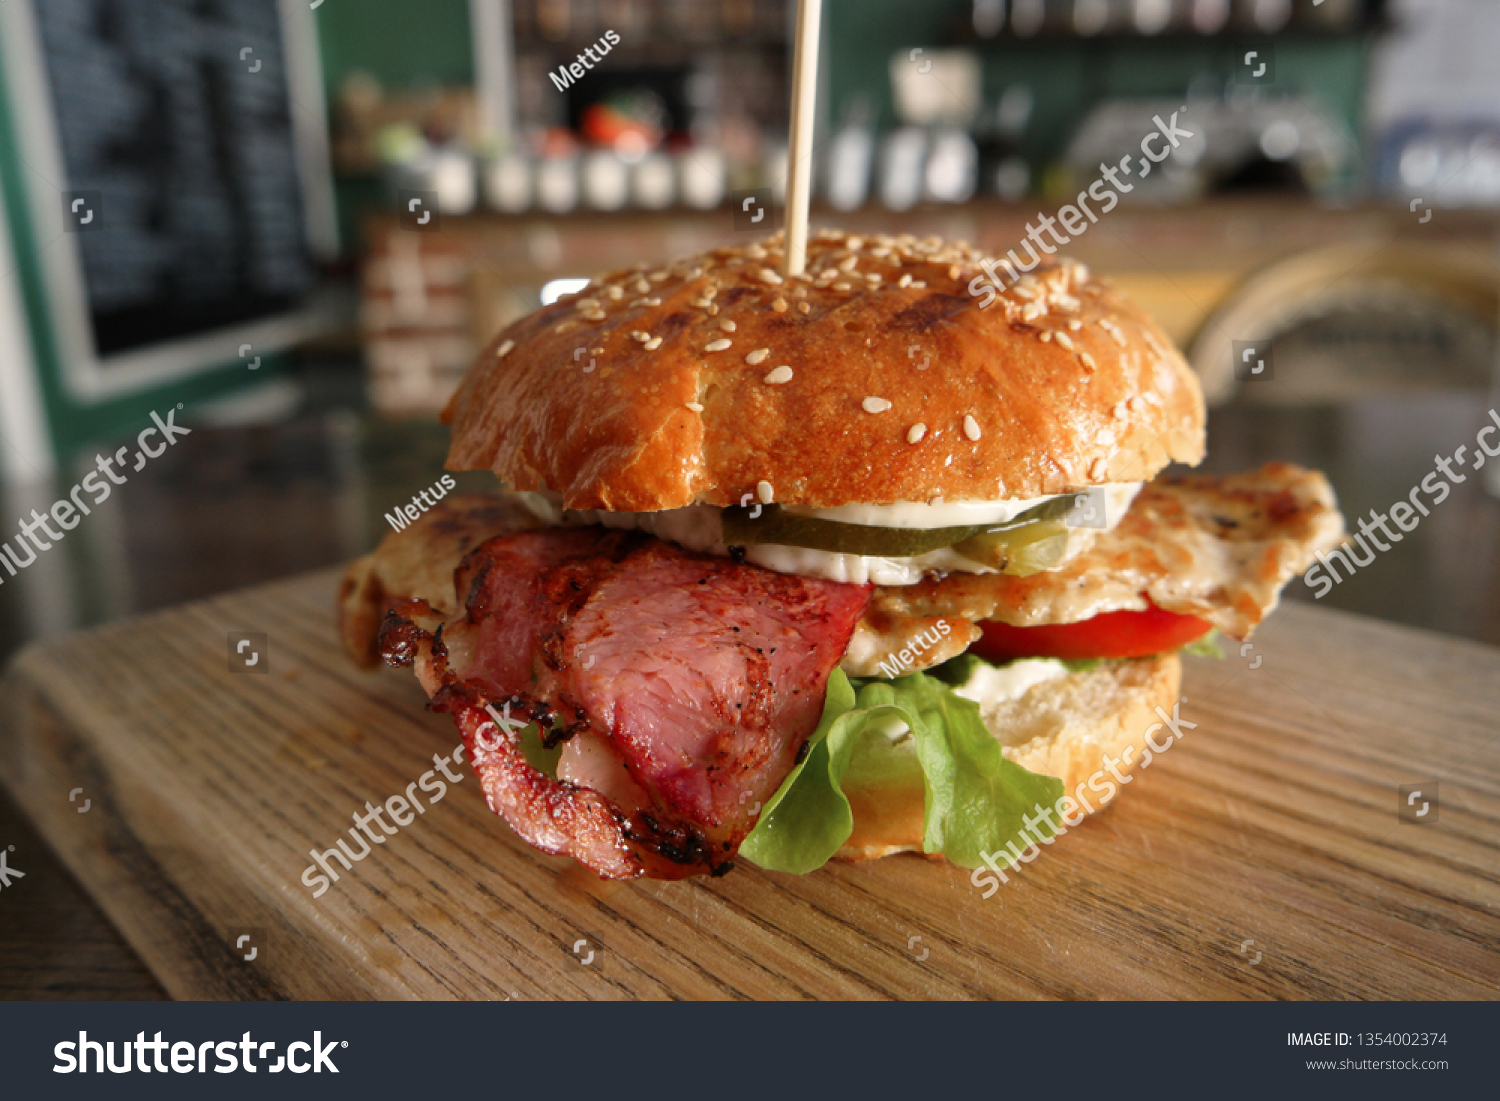 Grilled burger served on wooden board on table in pub